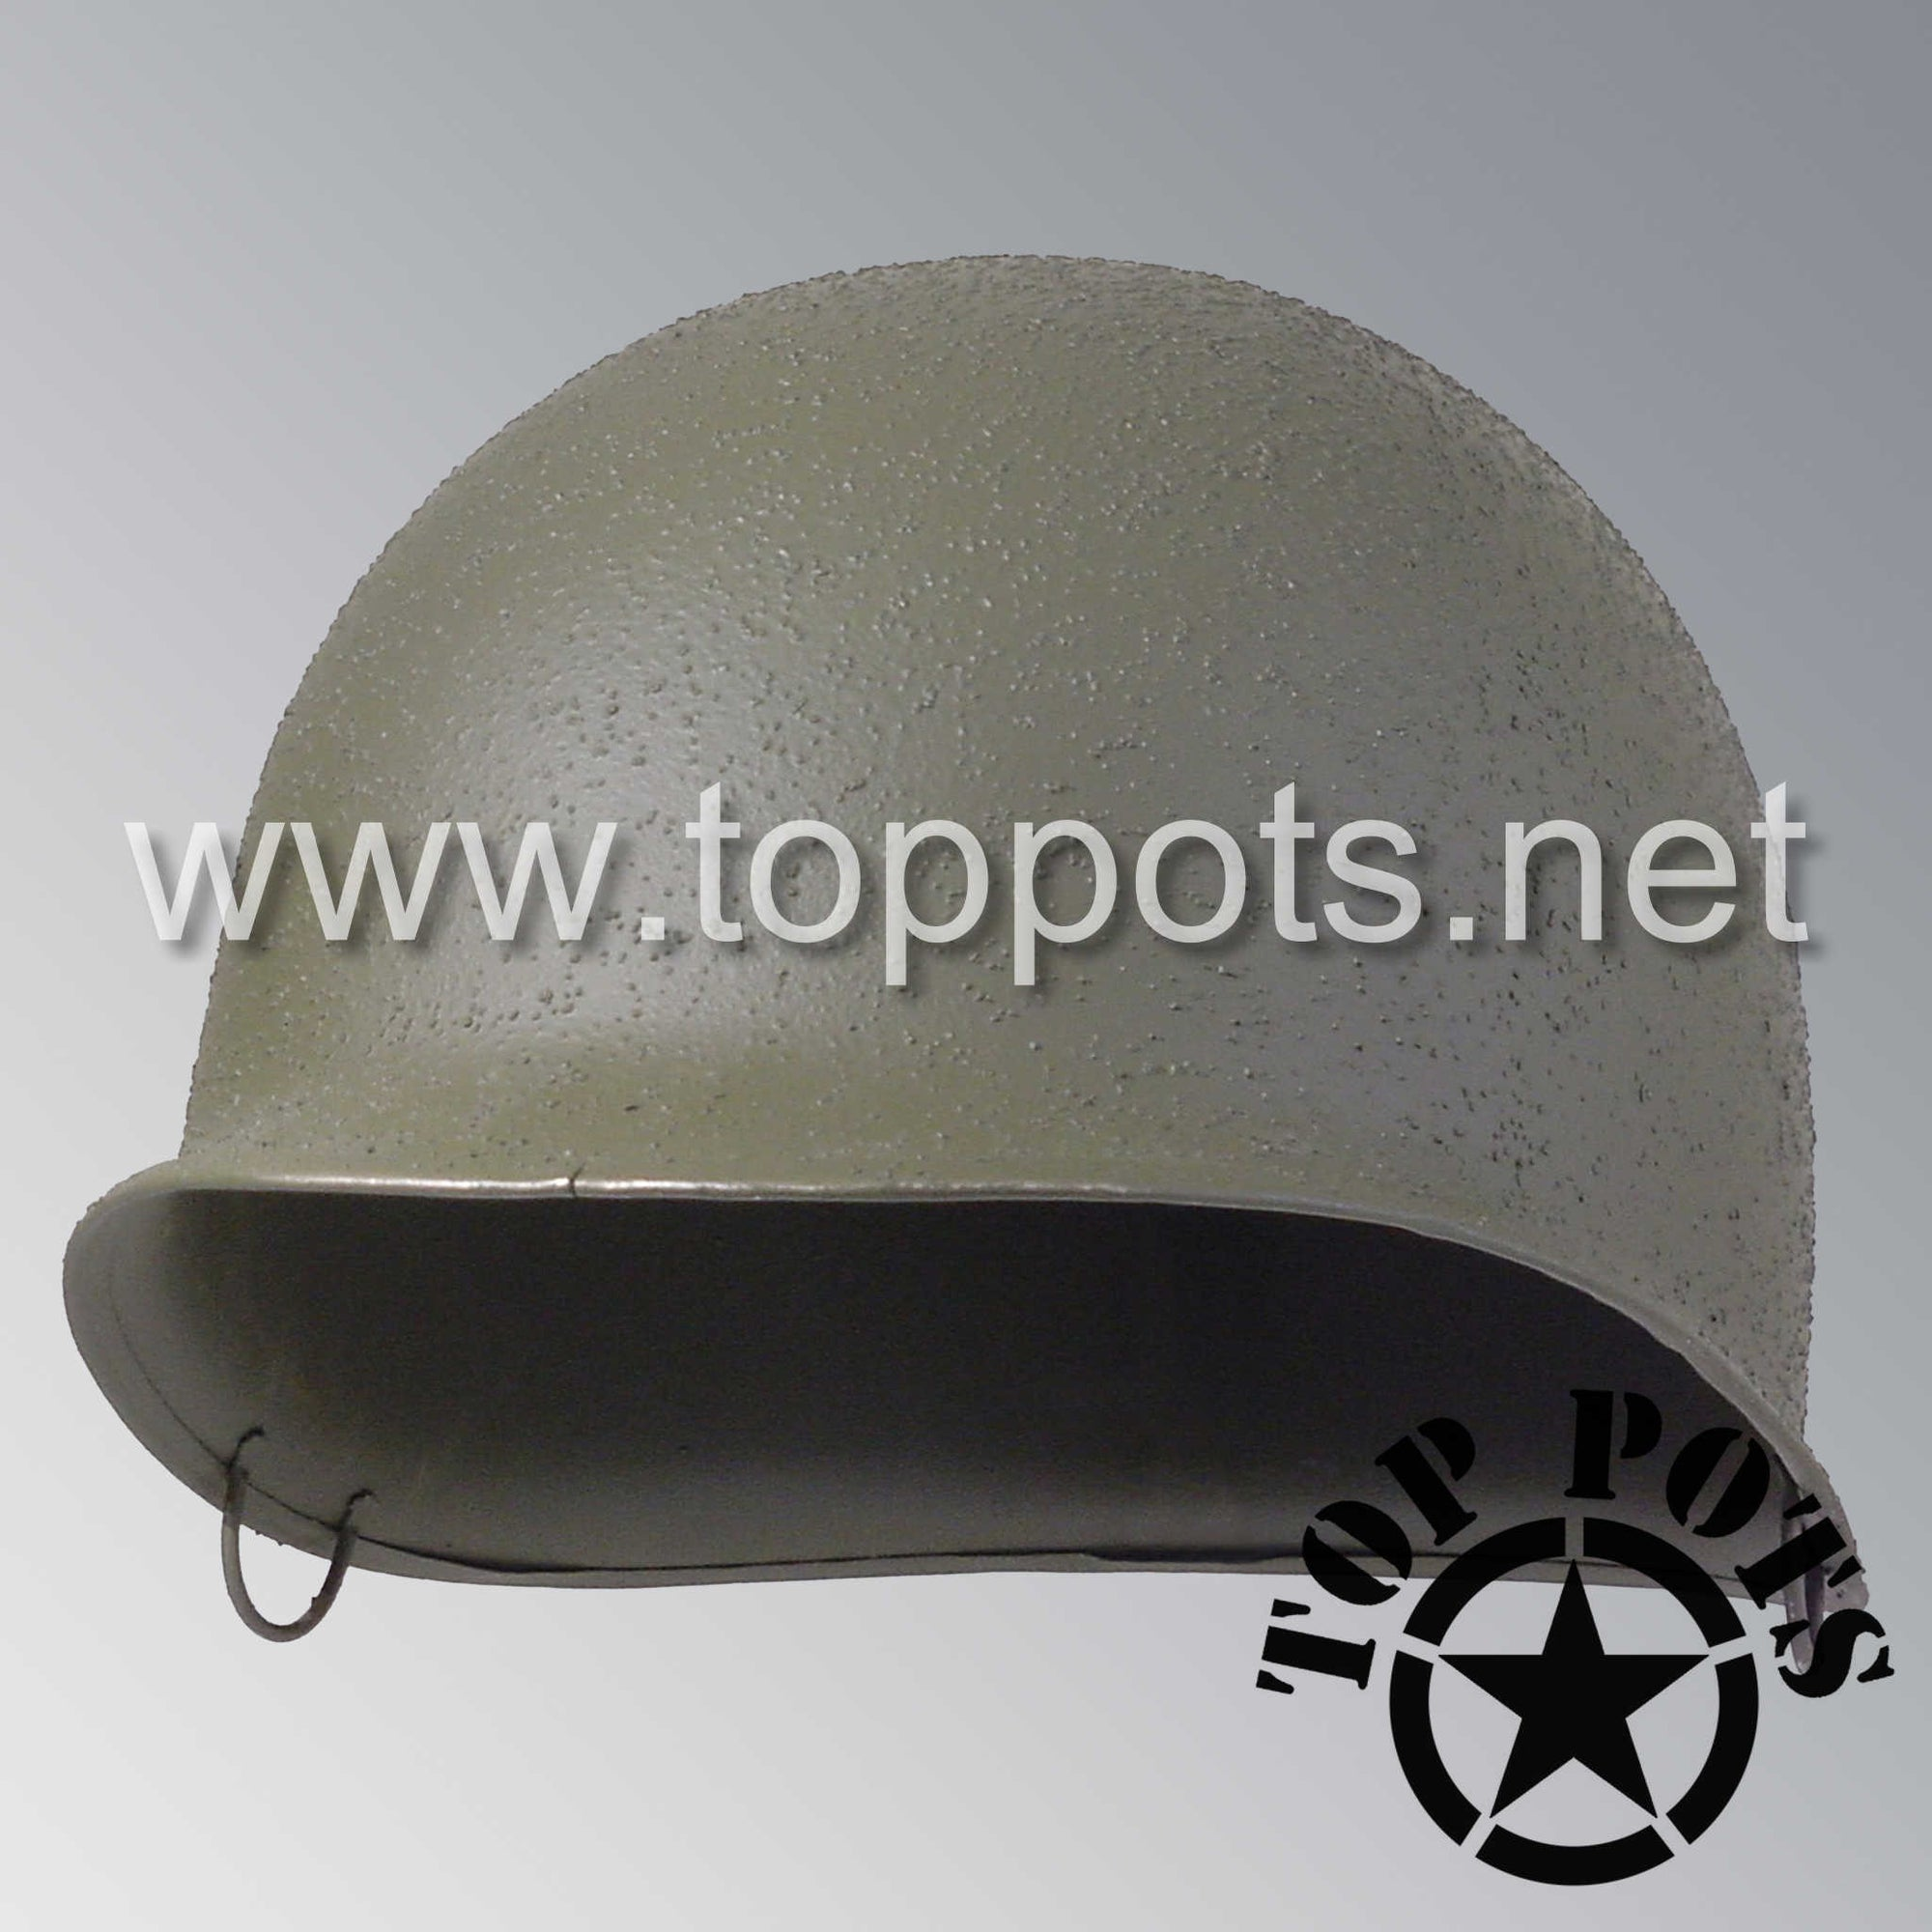 Image 1 of WWII US Army Restored Original M2 Paratrooper Airborne Helmet D Bale McCord Shell